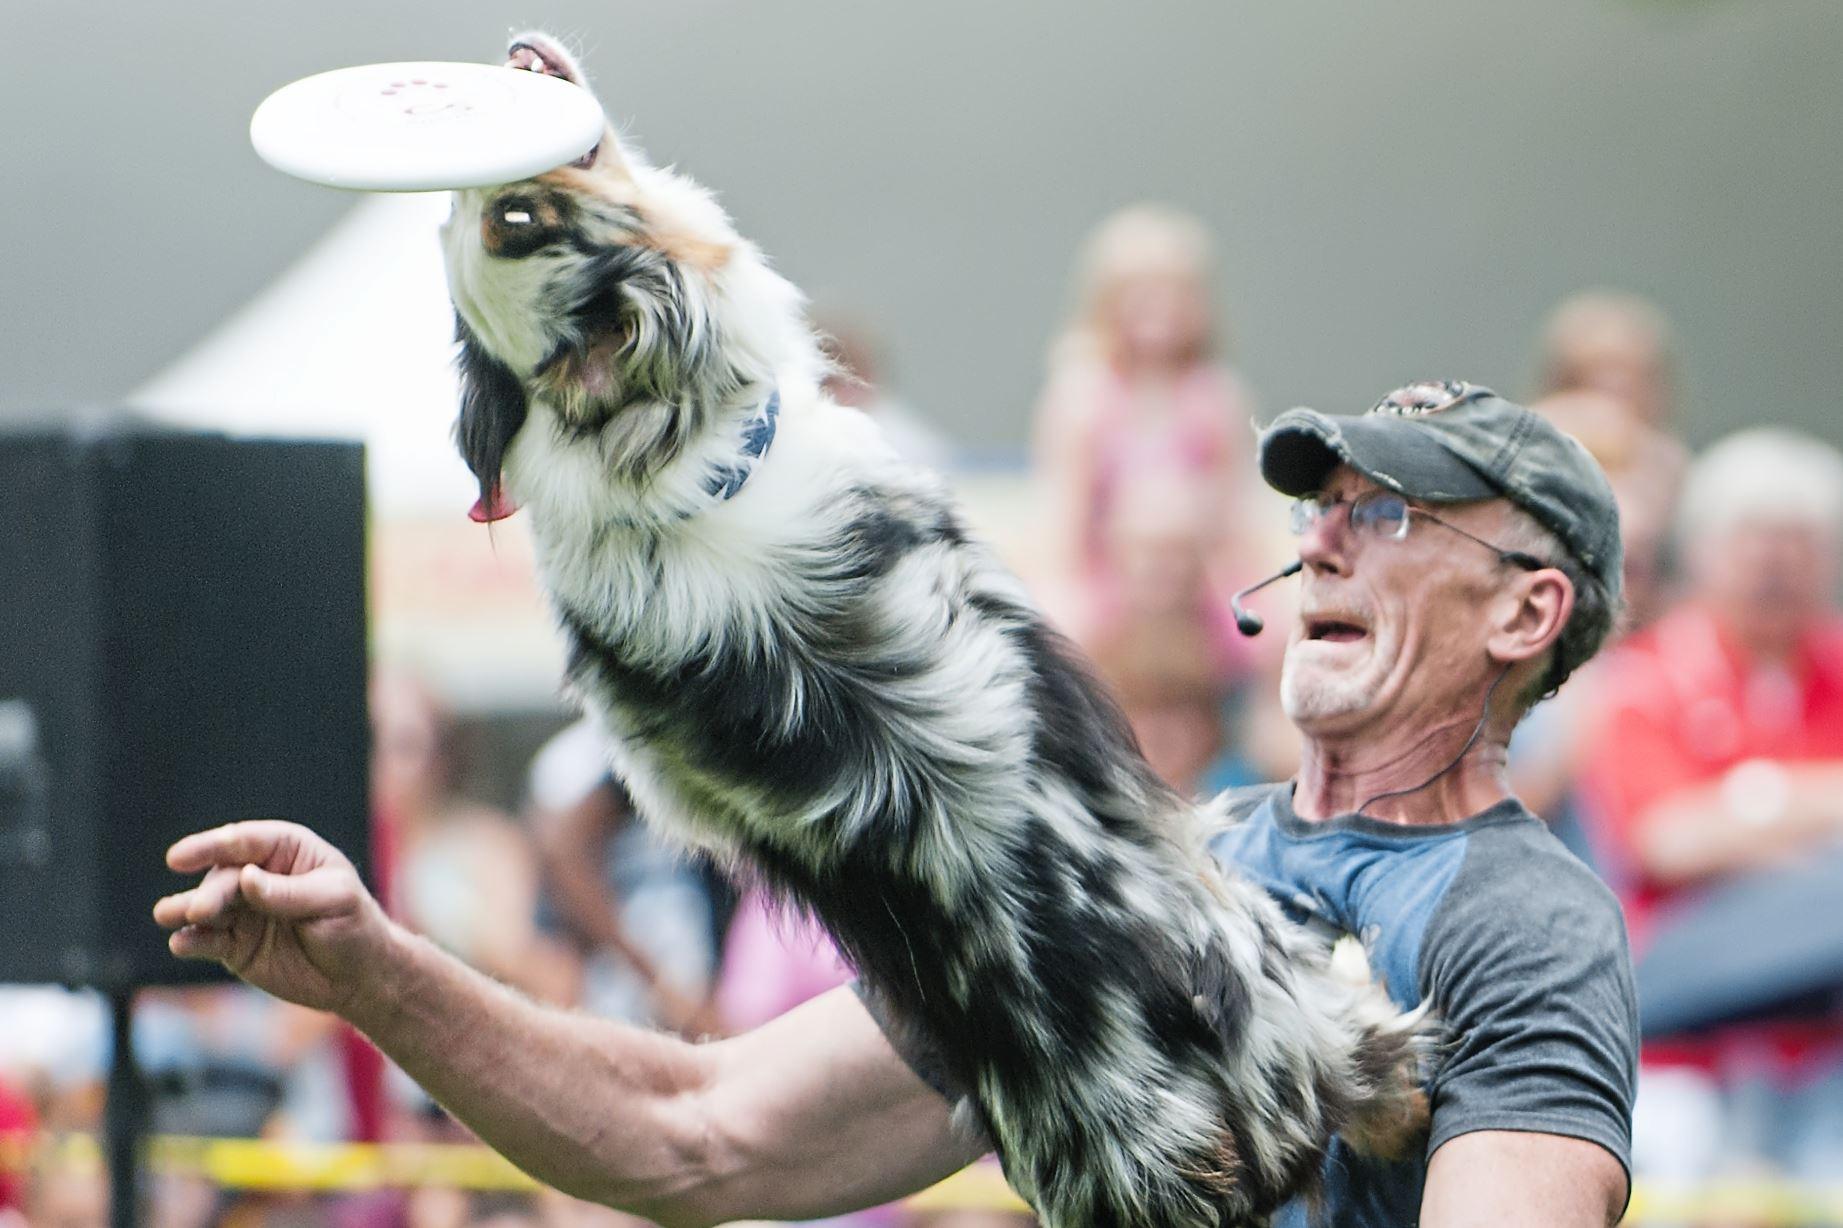 petevents0729 Cosmo and trainer Tad Bowen of Erie perform with the Muttley Crew Flying Dogs at the 2015 Three Rivers Regatta. Frisbee dogs will be part of this year's event, too.